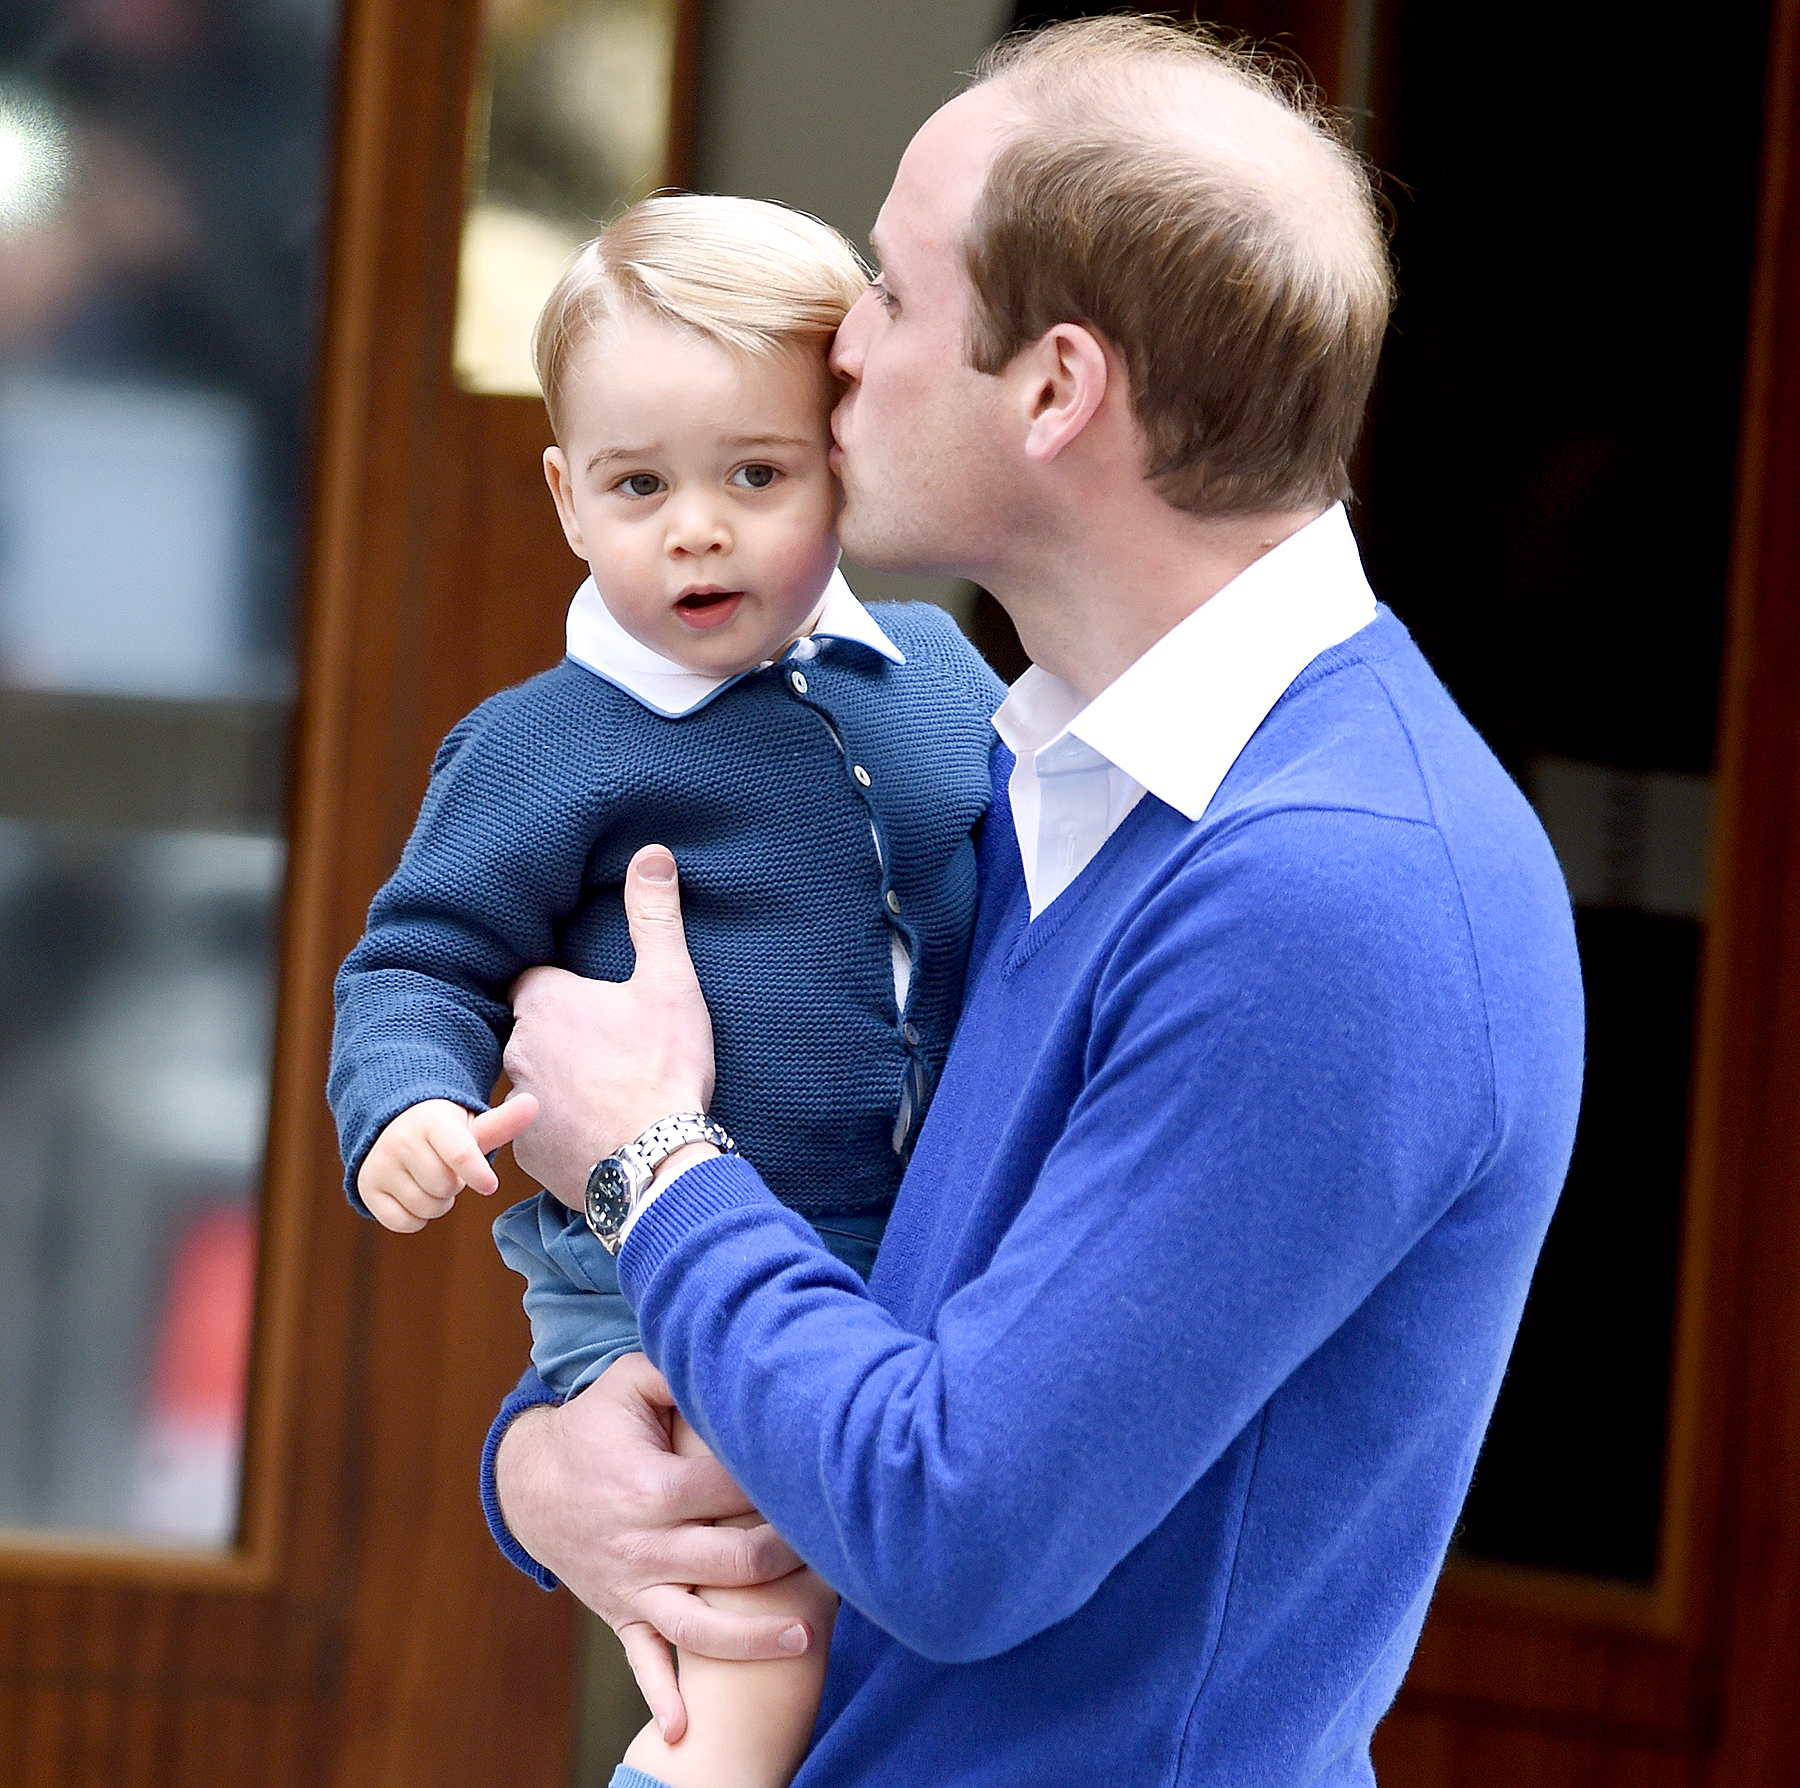 Prince William, Duke of Cambridge, and Prince George arrive at the Lindo Wing at St. Mary's Hospital on May 02, 2015 in London, England.